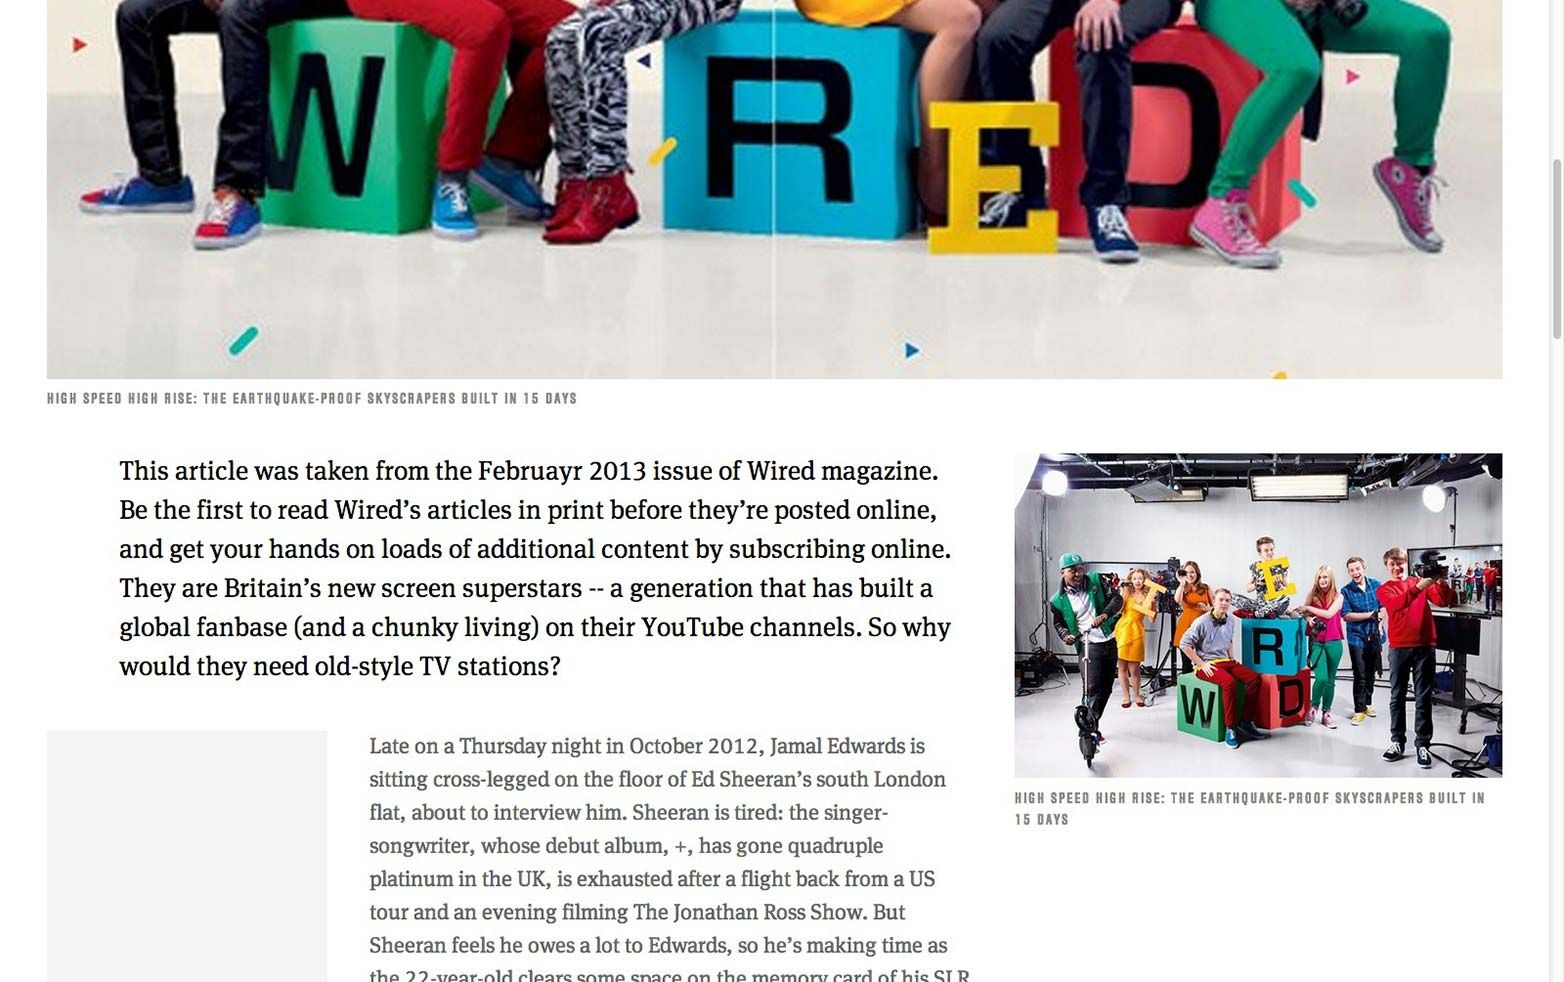 Designing the new, fully responsive wired.co.uk article pages | Articles